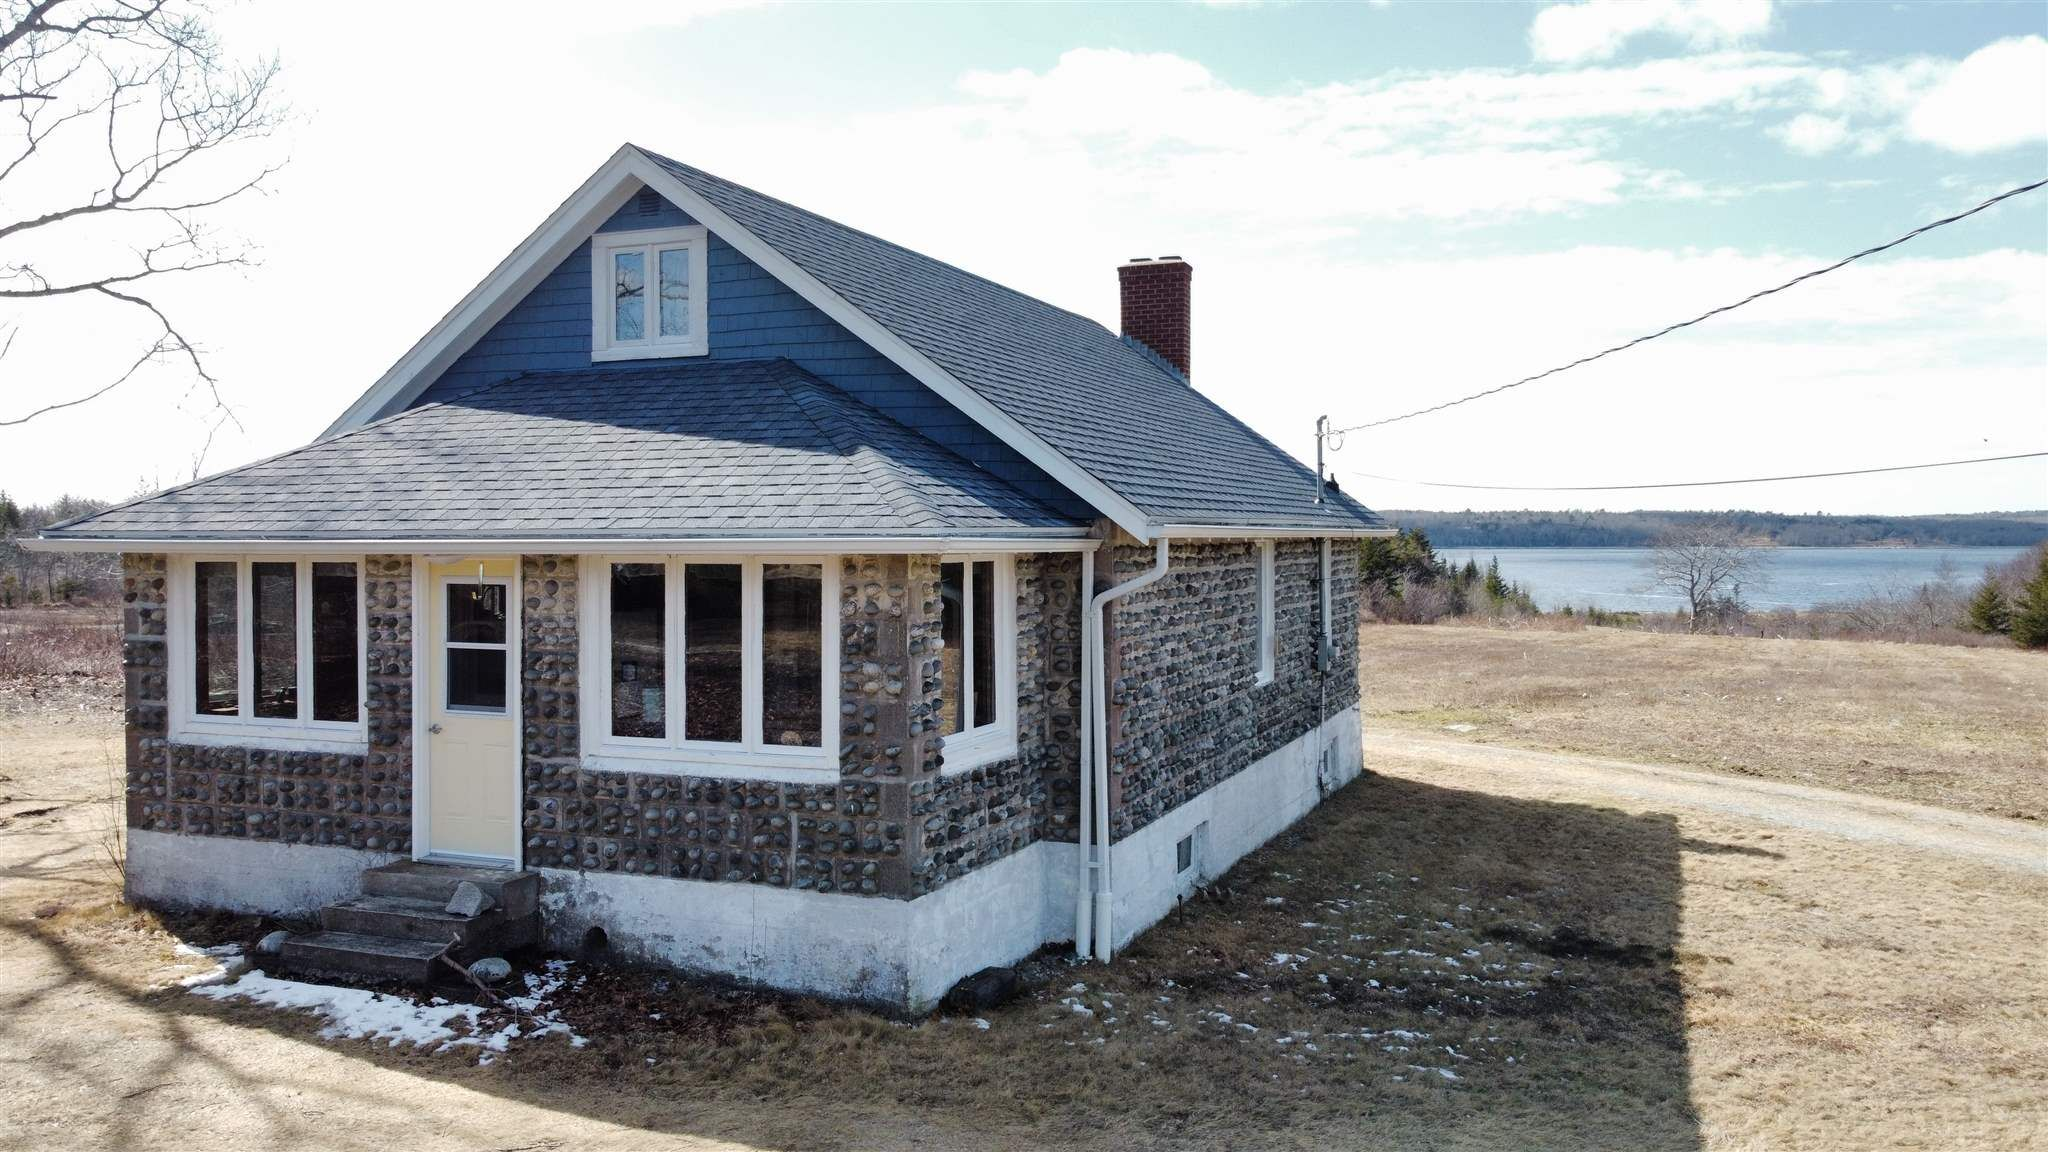 Main Photo: 5439 Highway 3 in East Jordan: 407-Shelburne County Residential for sale (South Shore)  : MLS®# 202106869